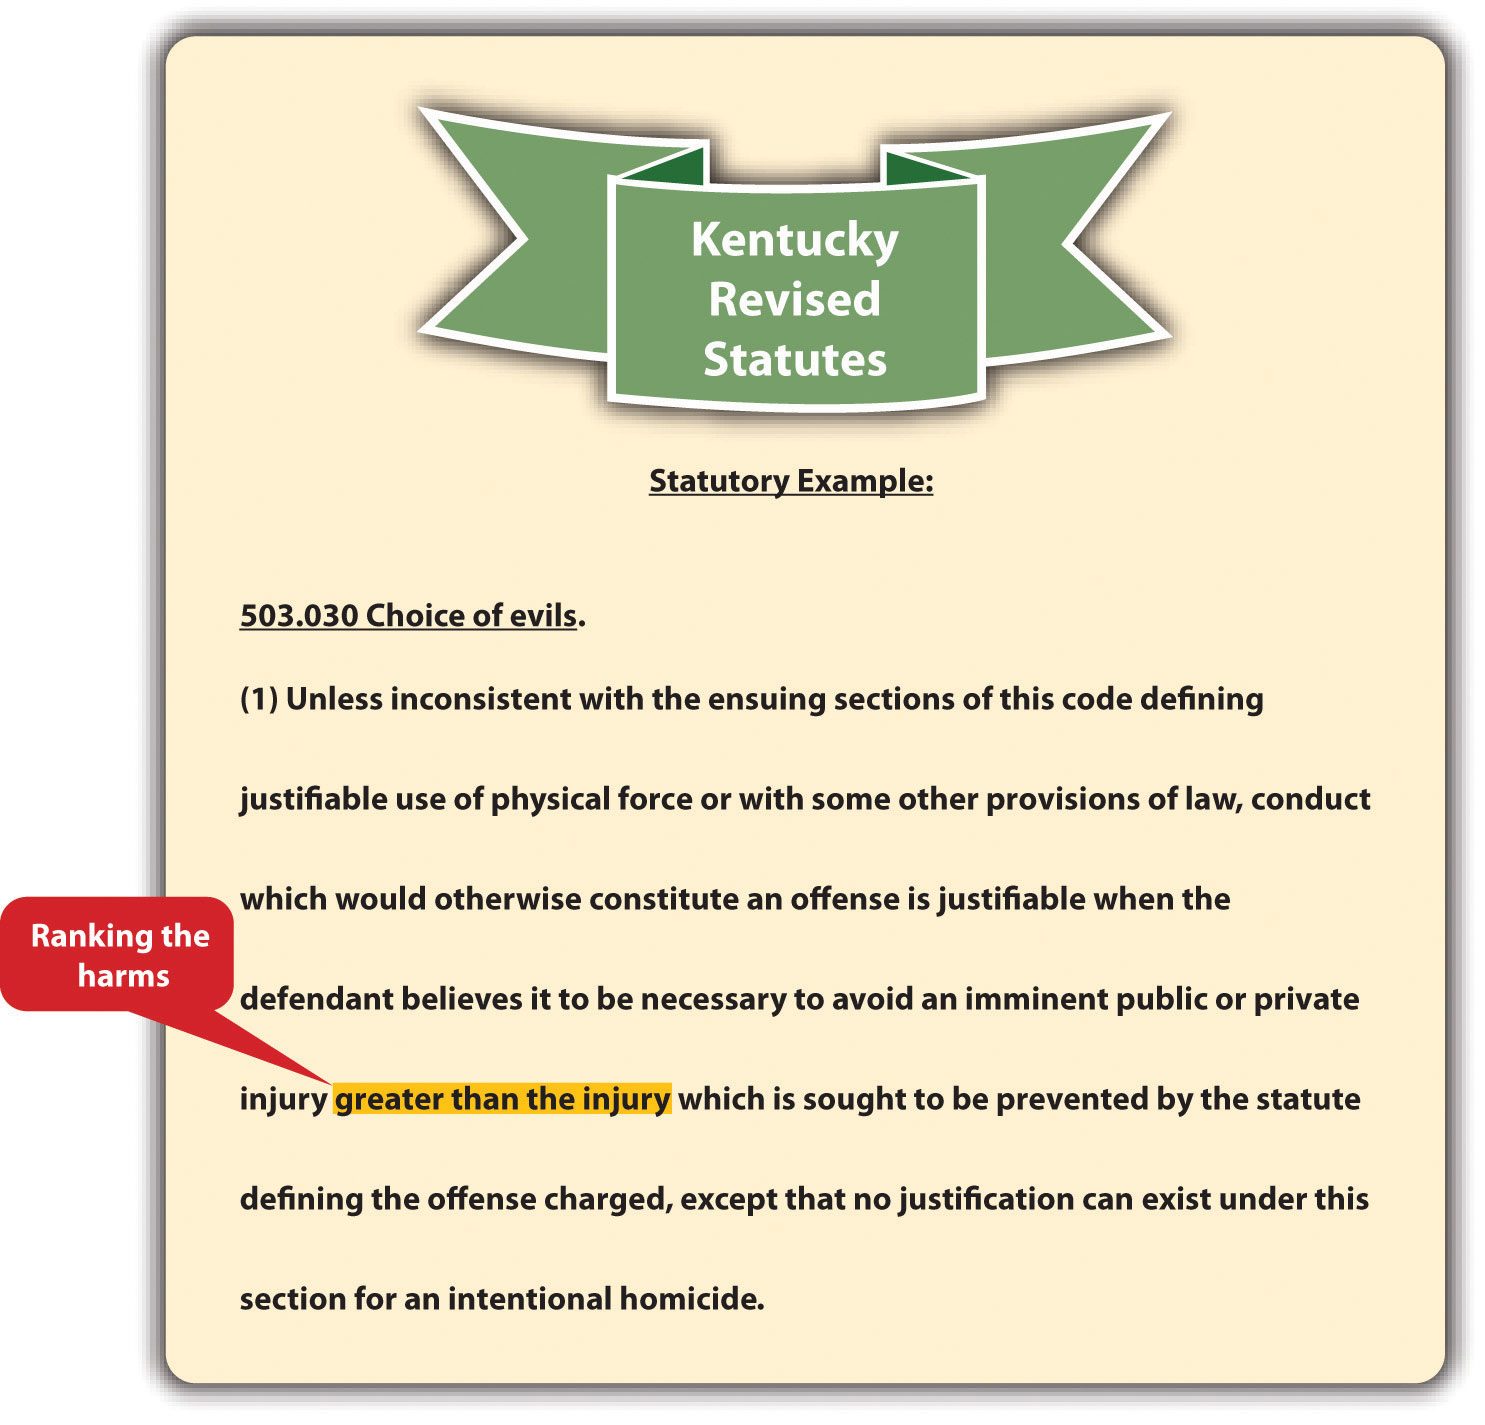 Kentucky Revised Statutes with annotations.